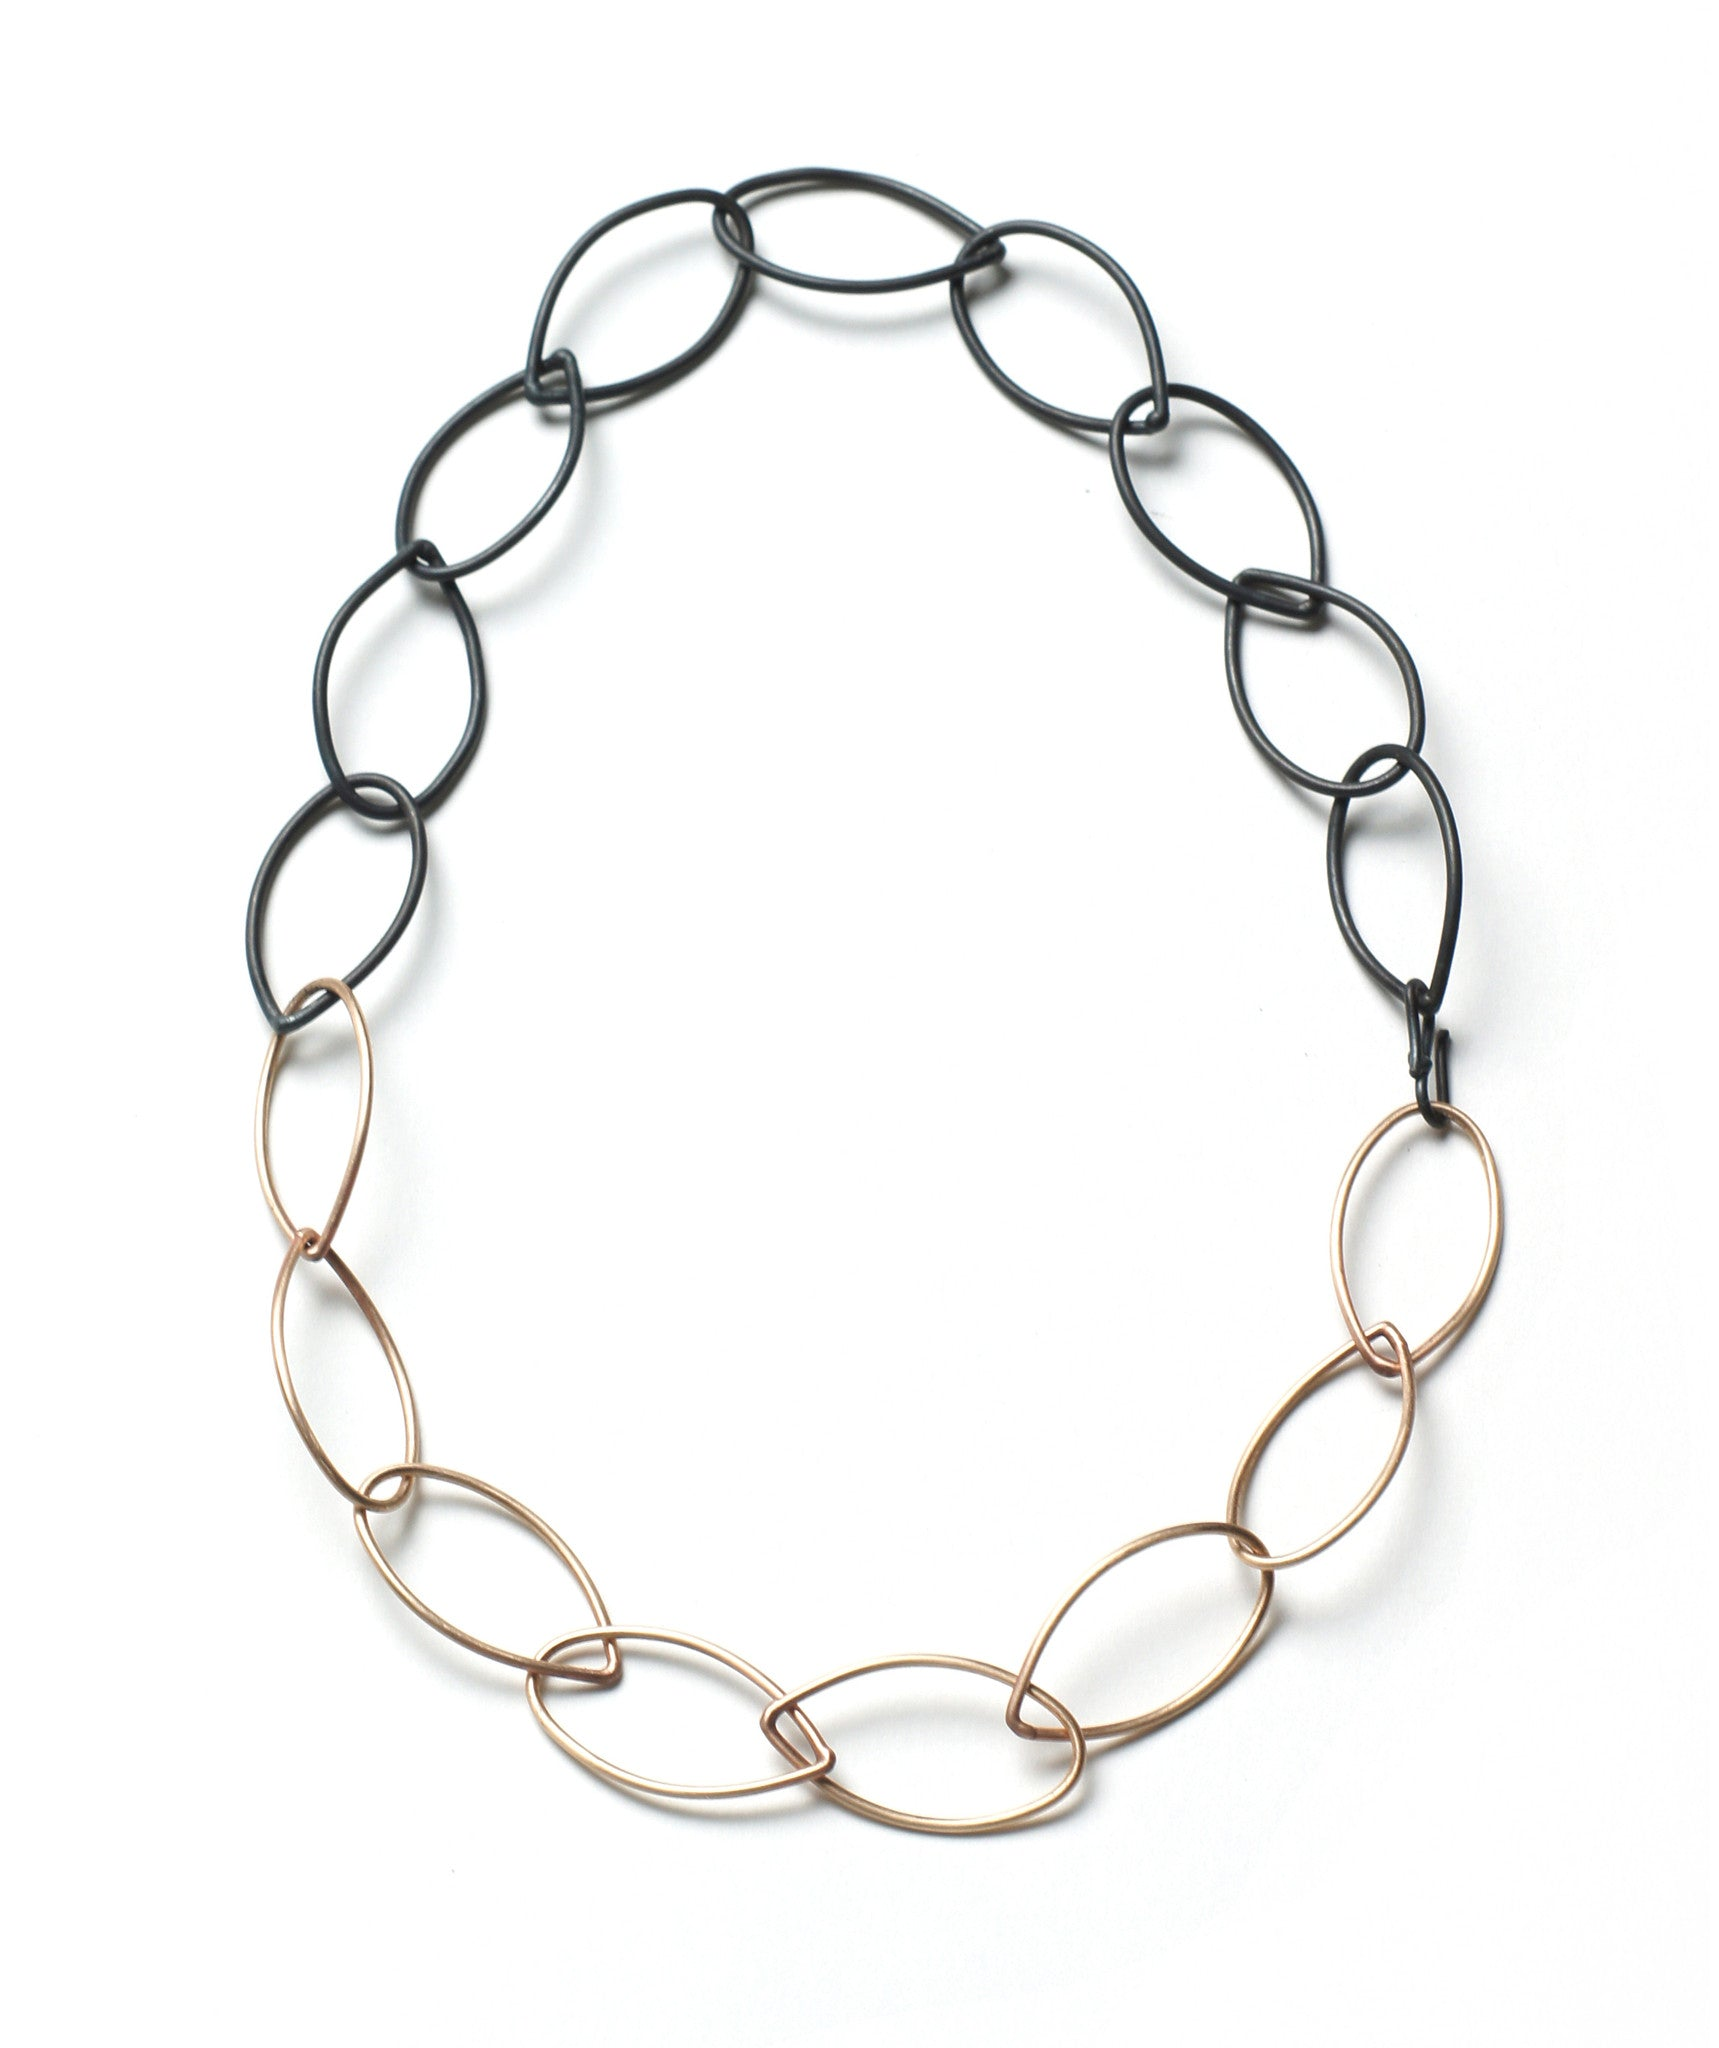 Audrey necklace - Shift Collection